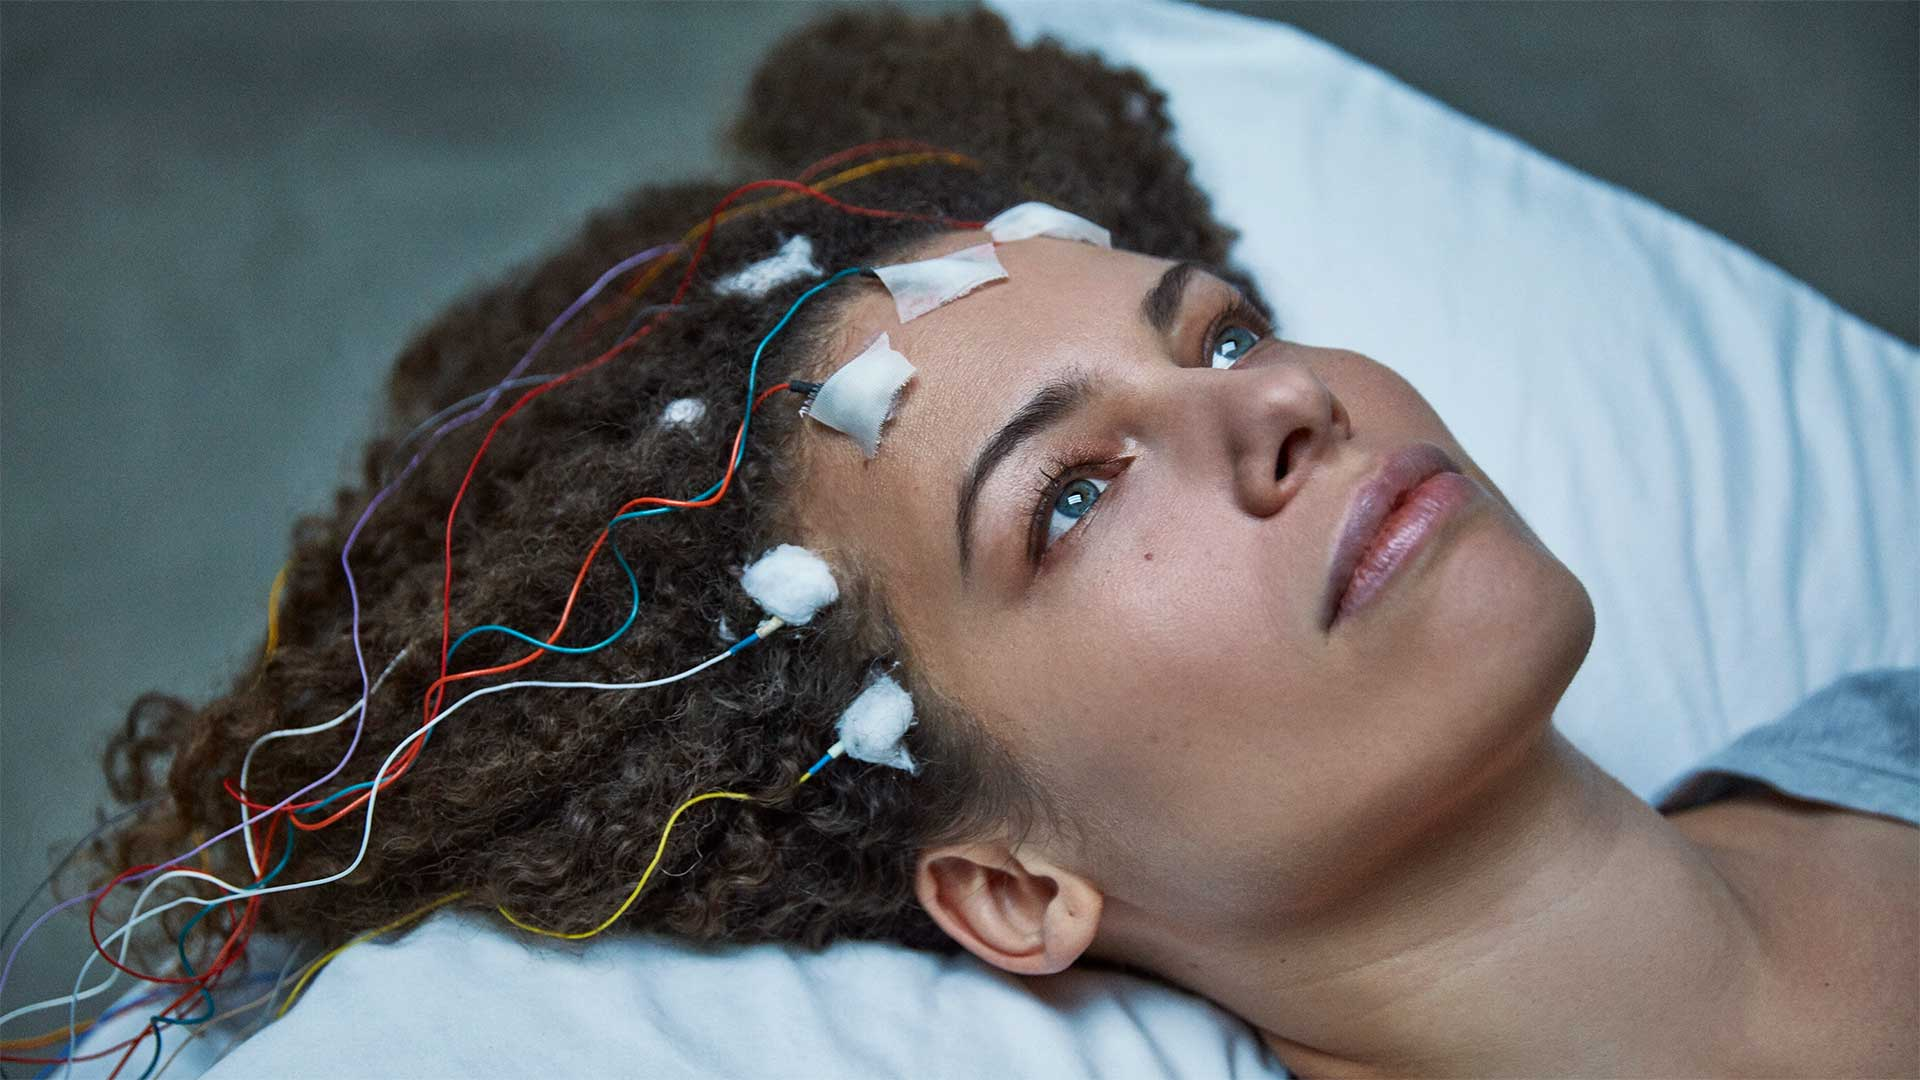 Disbelieved by doctors, Jennifer Brea turns the camera on herself to reveal the hidden world of ME in her film UNREST.